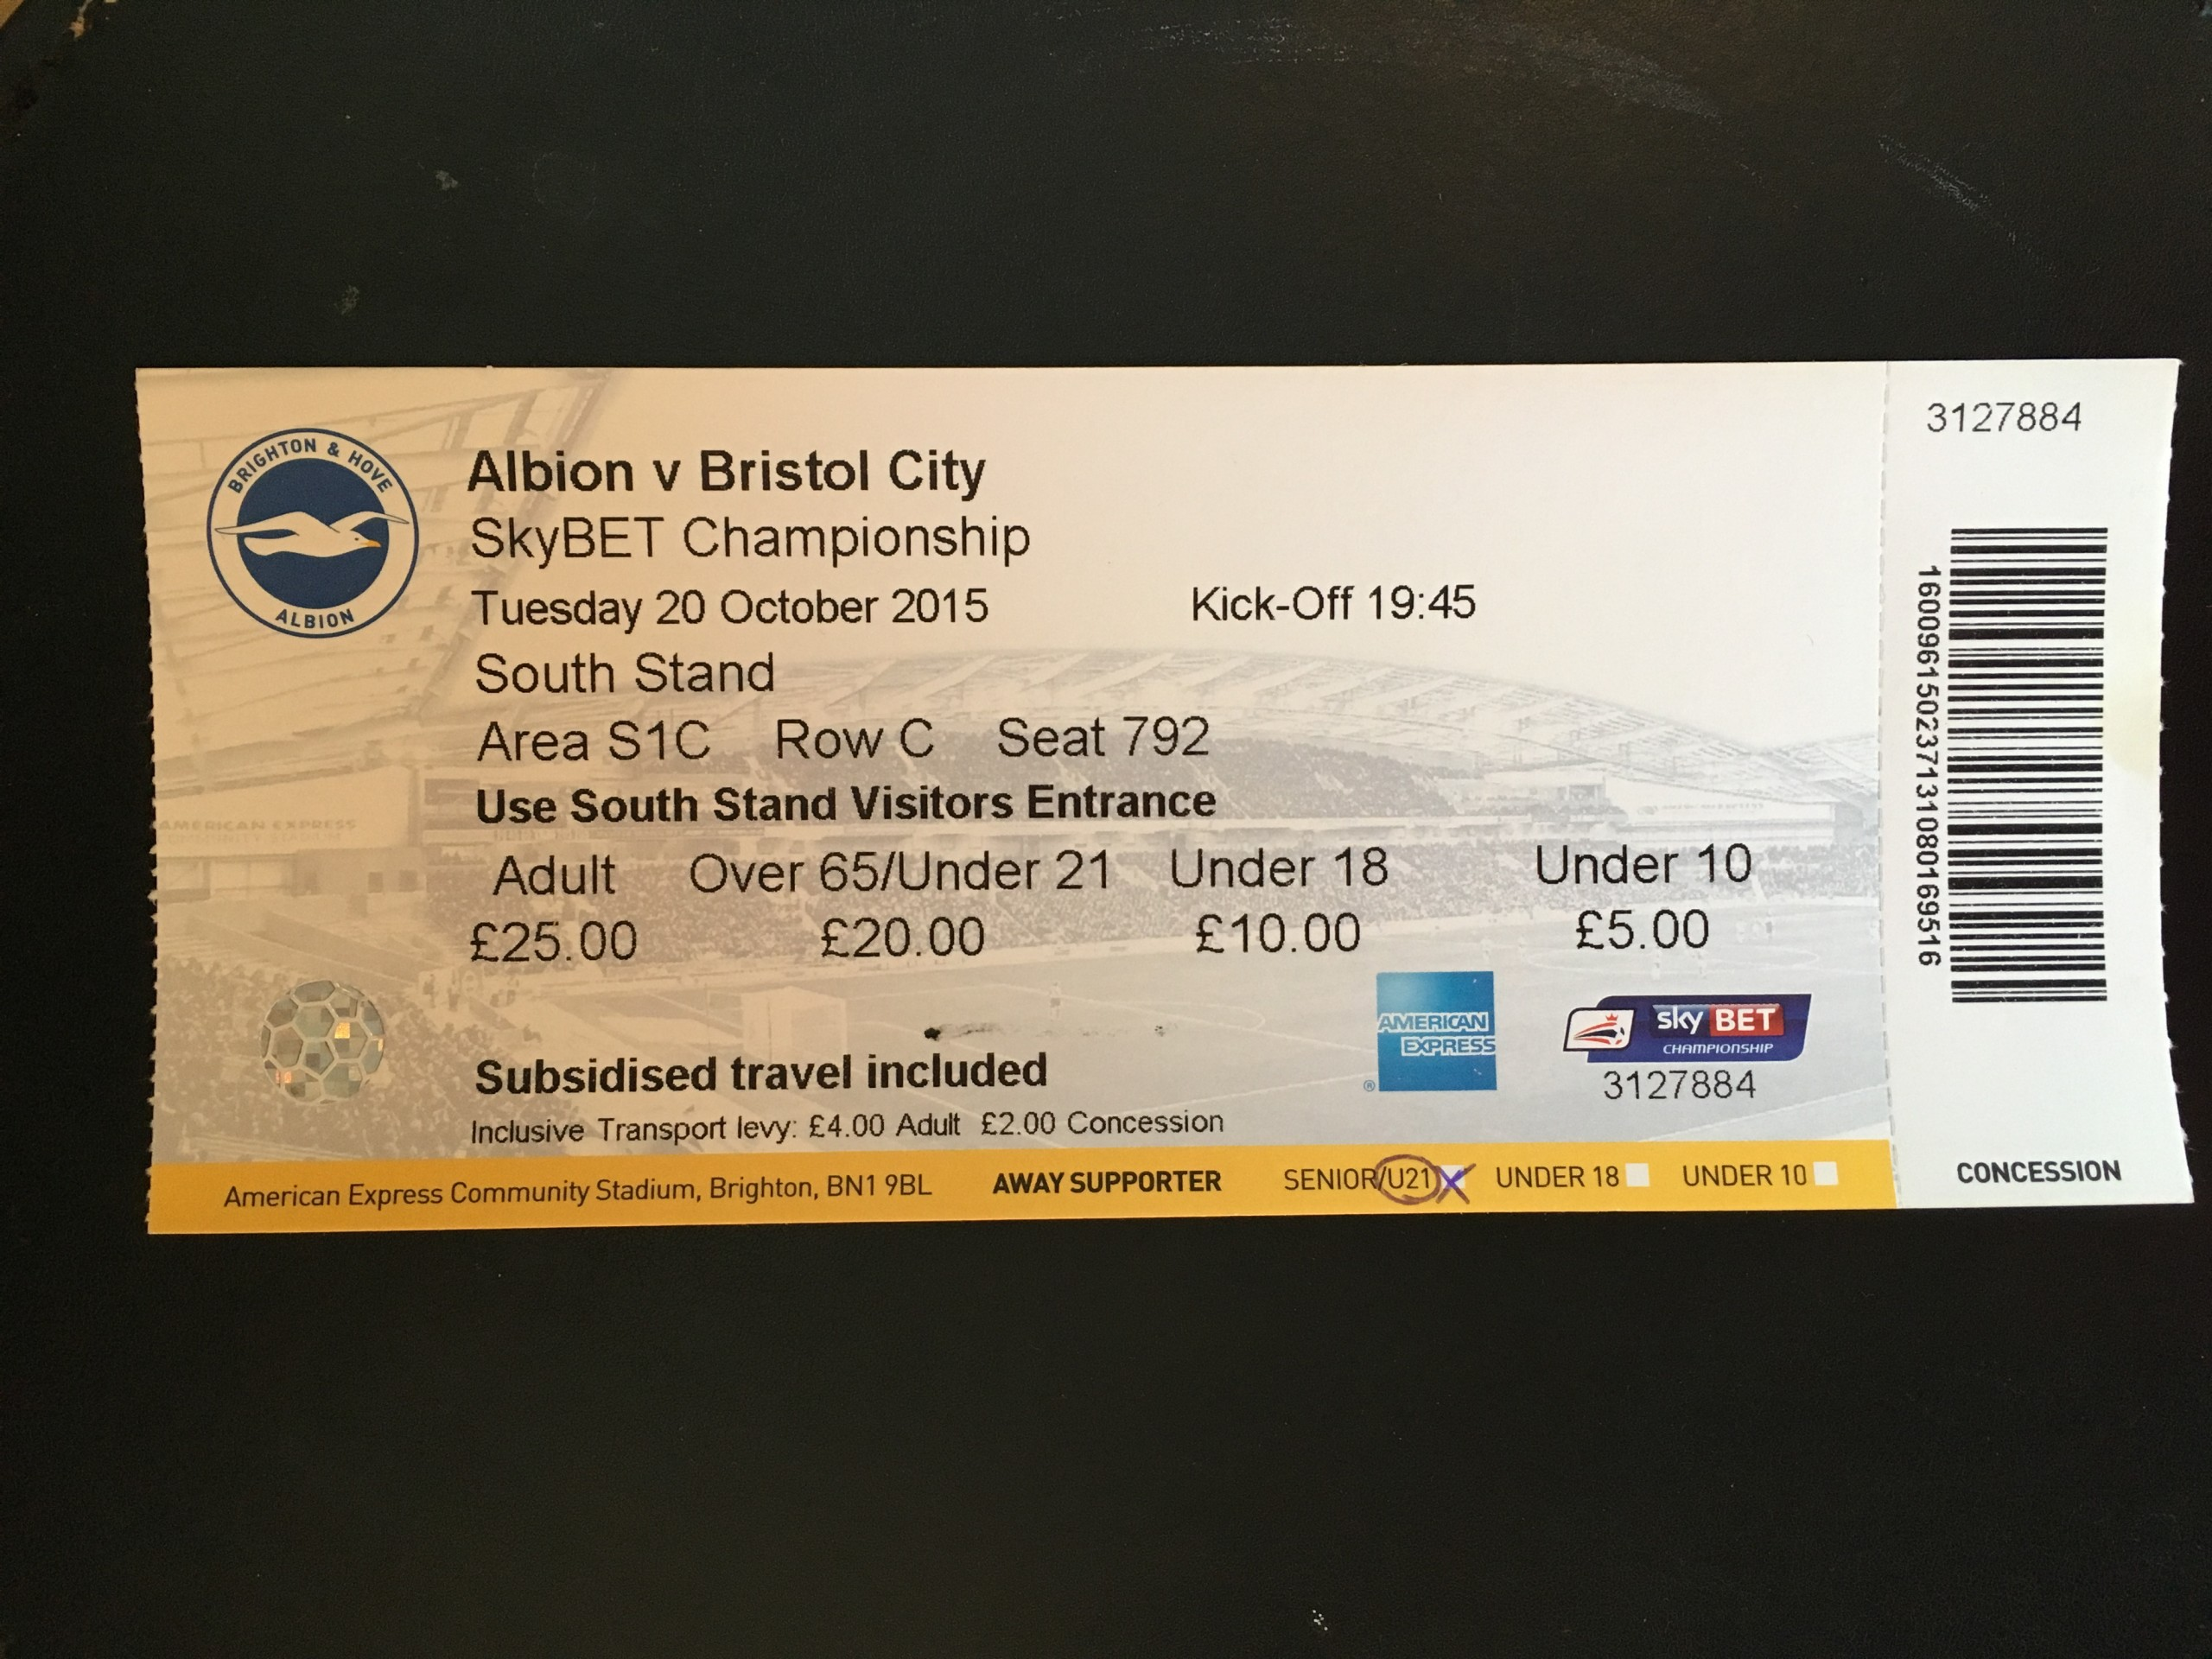 Brighton & Hove Albion v Bristol City 20-10-2015 Ticket